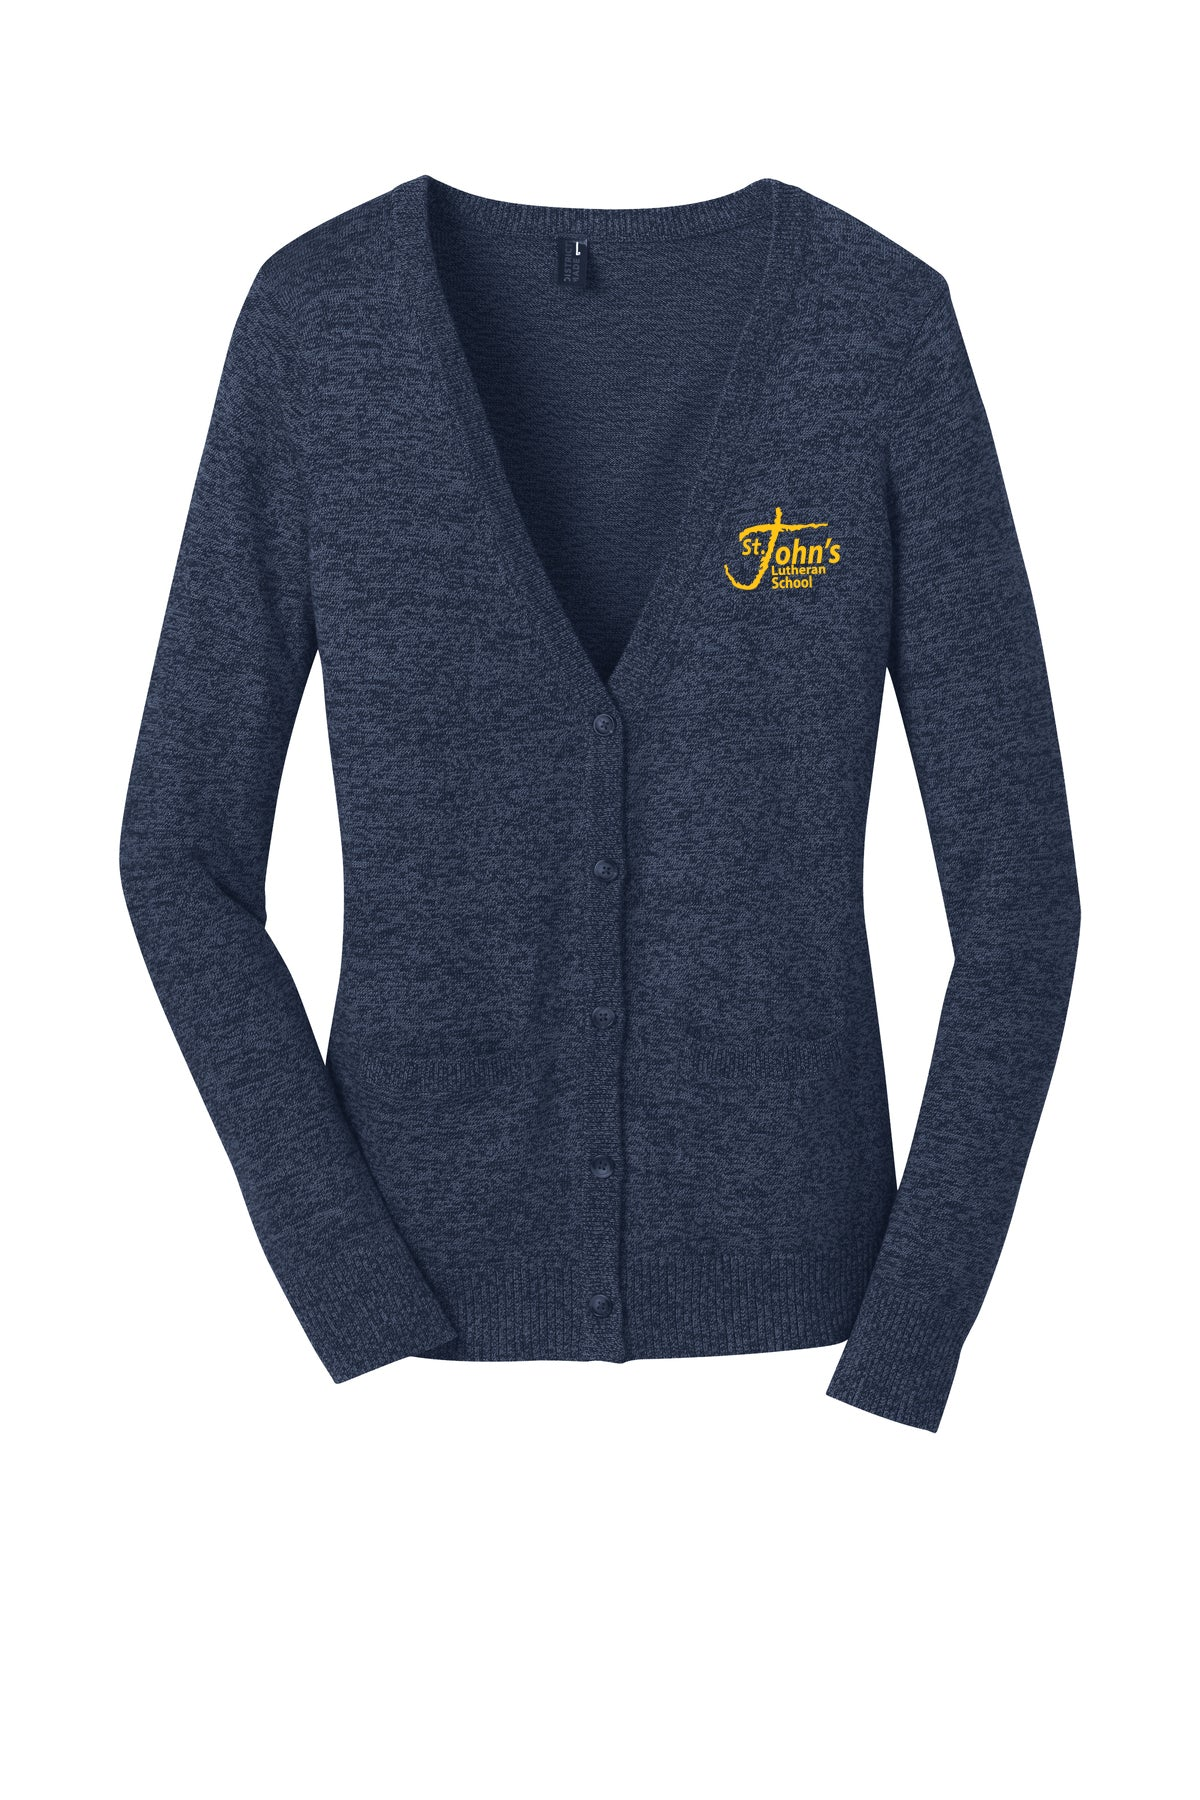 St. John's Cardigan Sweater-Girls